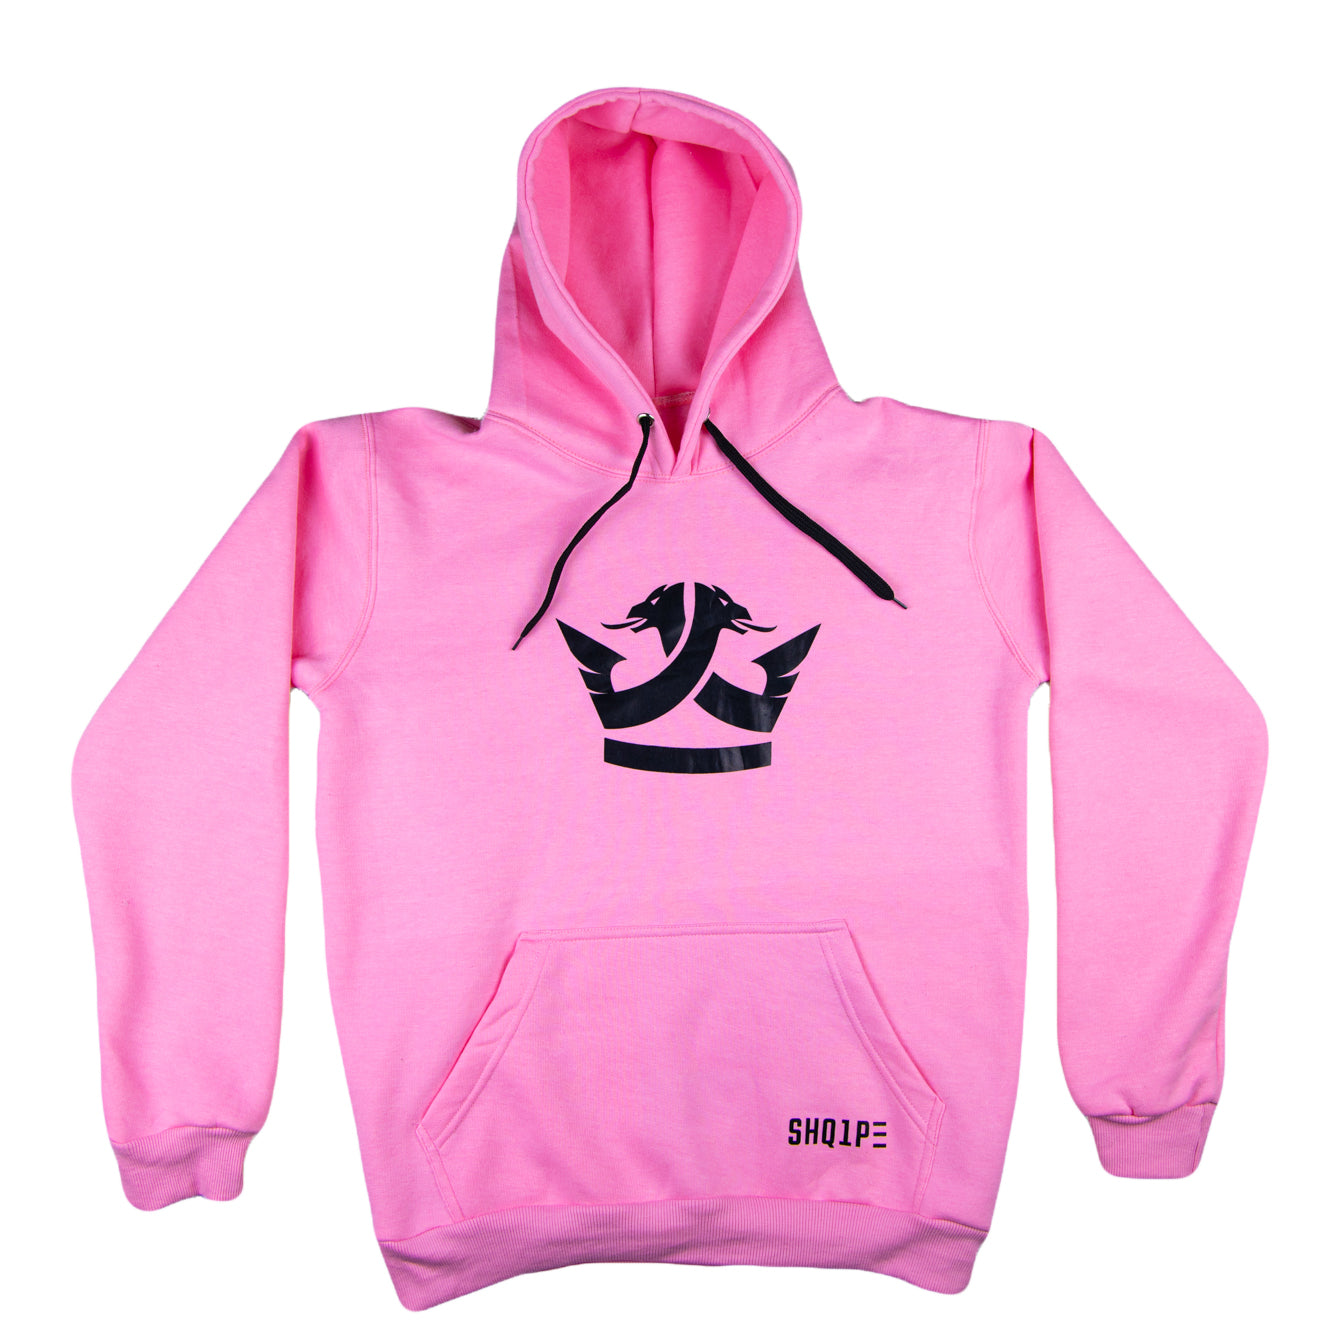 1st Edition Shq1pe Hoodie Pink